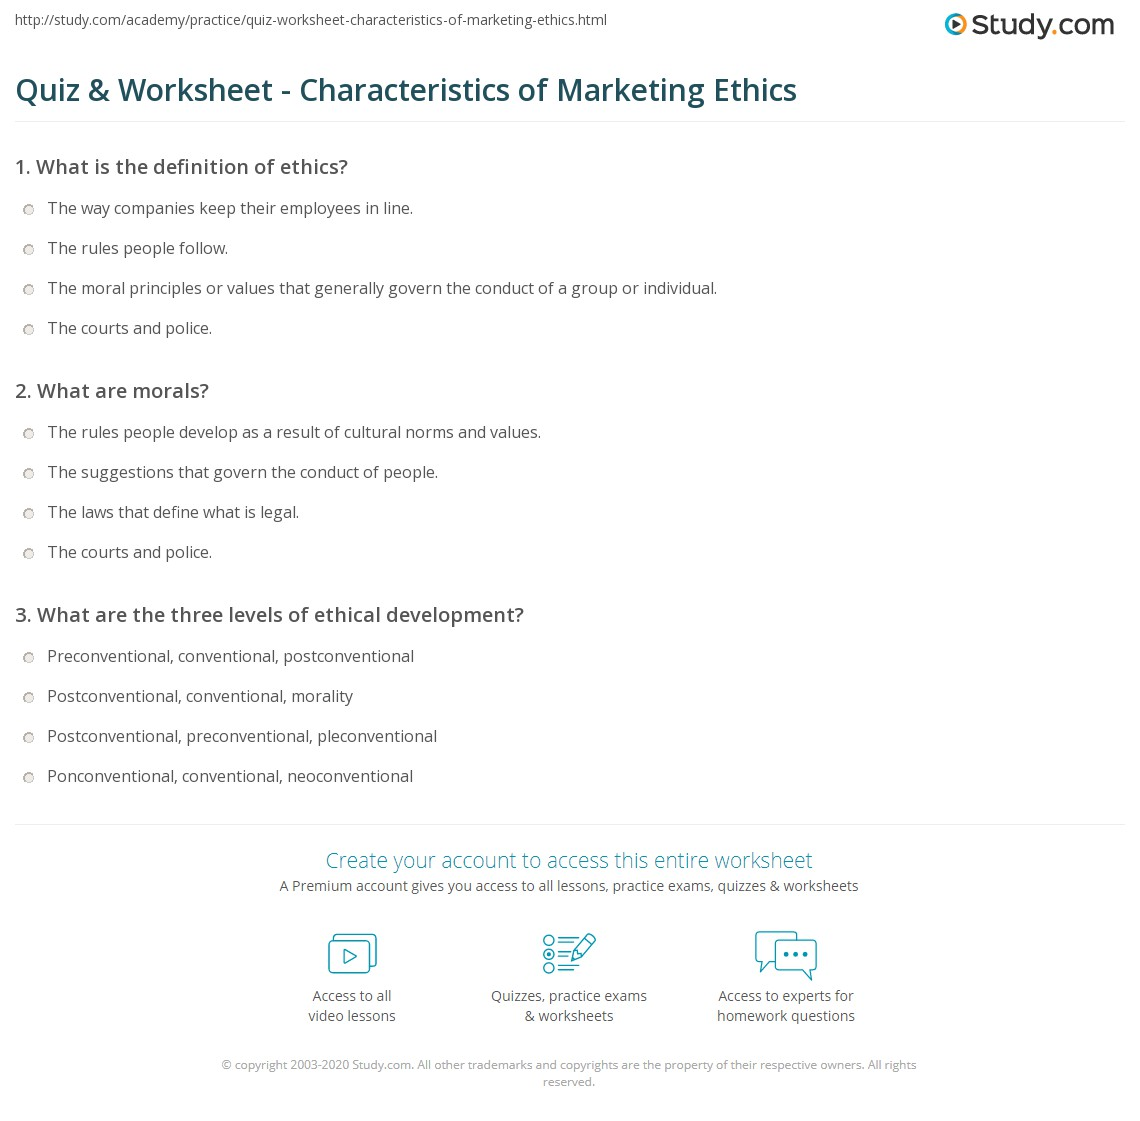 quiz & worksheet - characteristics of marketing ethics | study